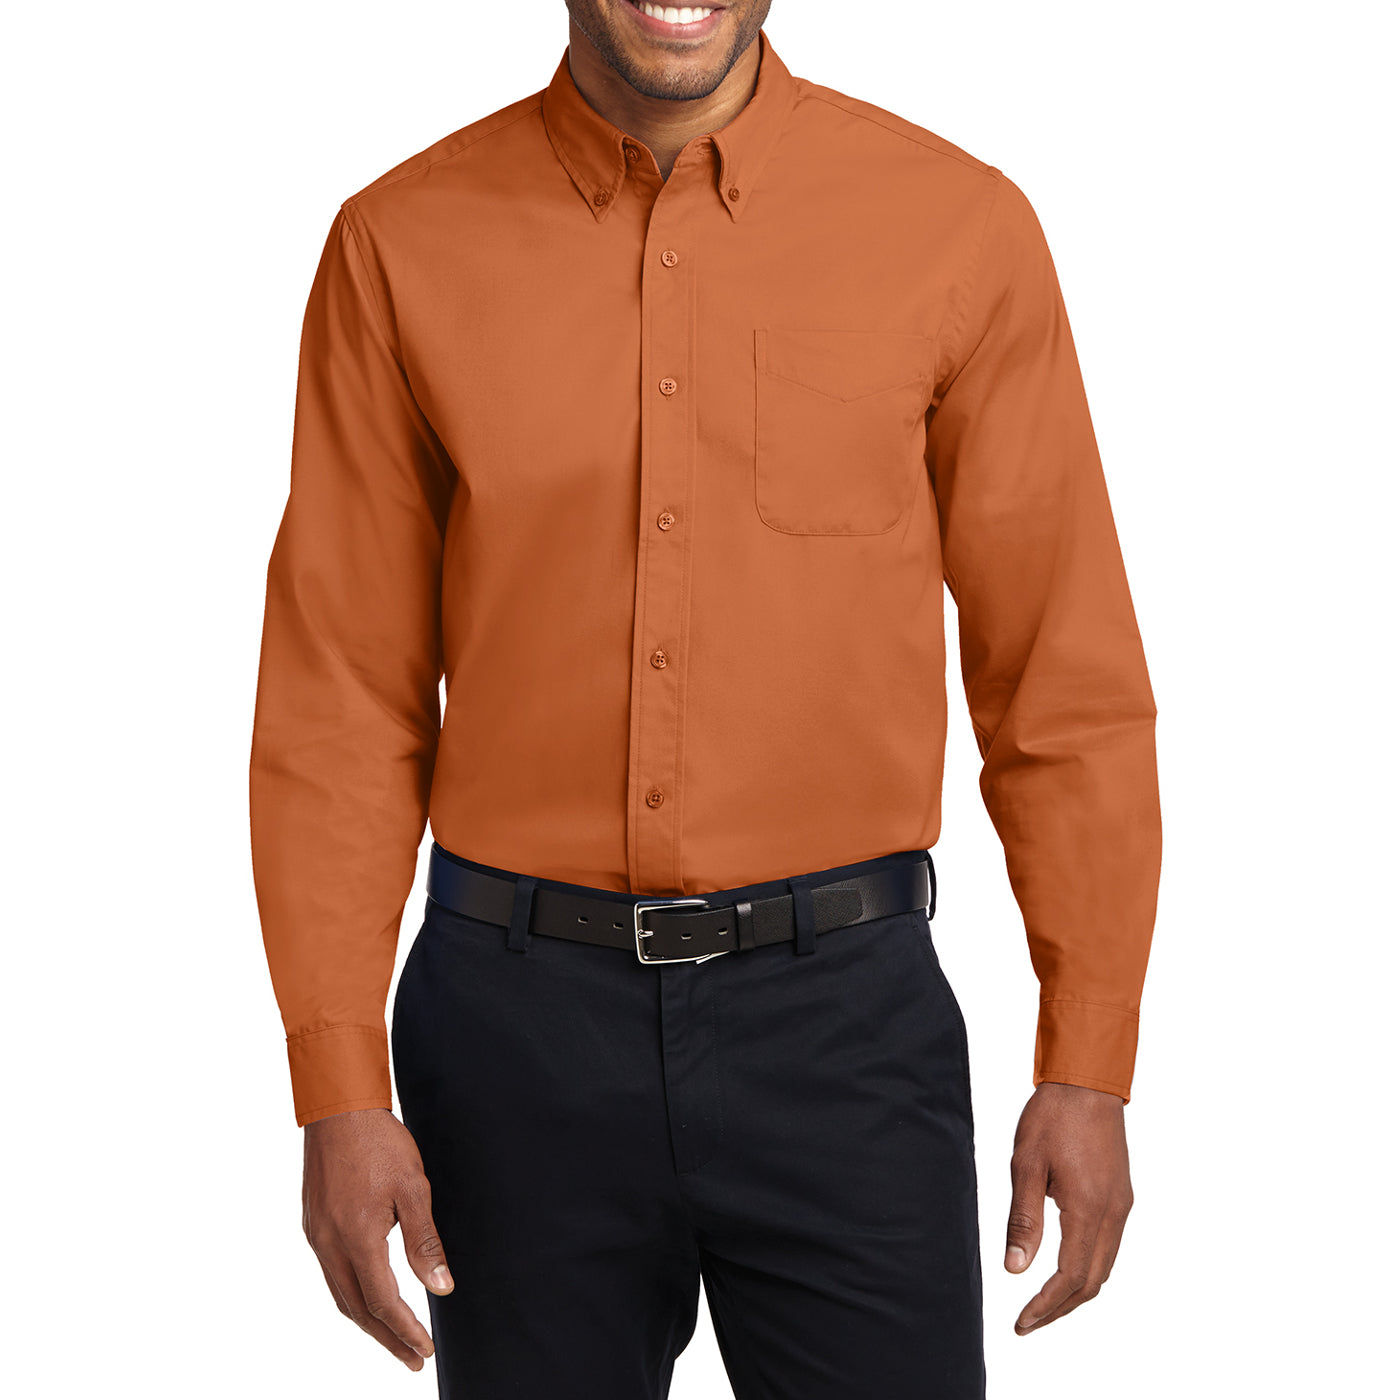 Men's Long Sleeve Easy Care Shirt - Texas Orange/ Light Stone - Front